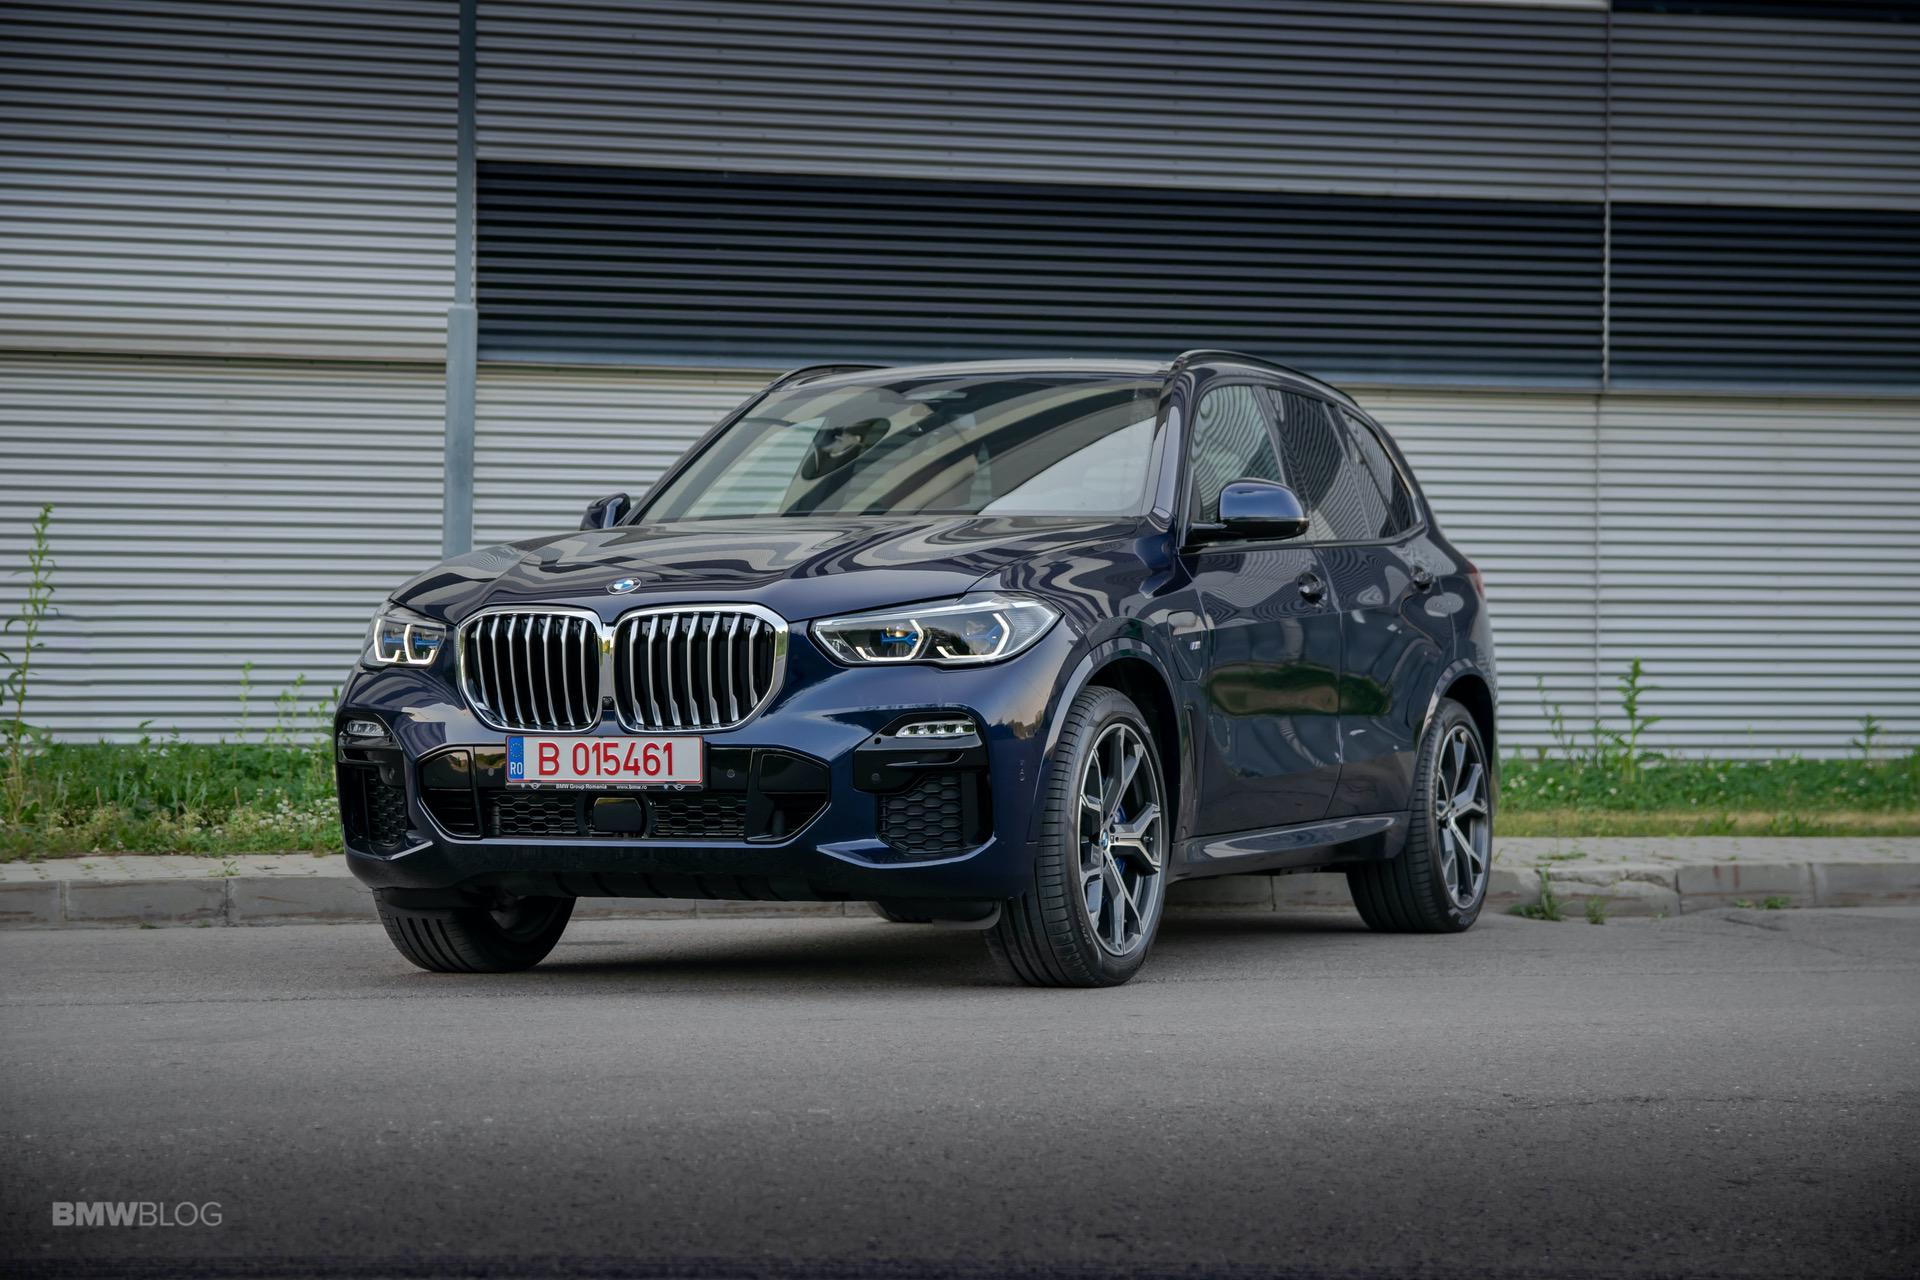 2020 Bmw X5 Xdrive45e Review The New Best Buy